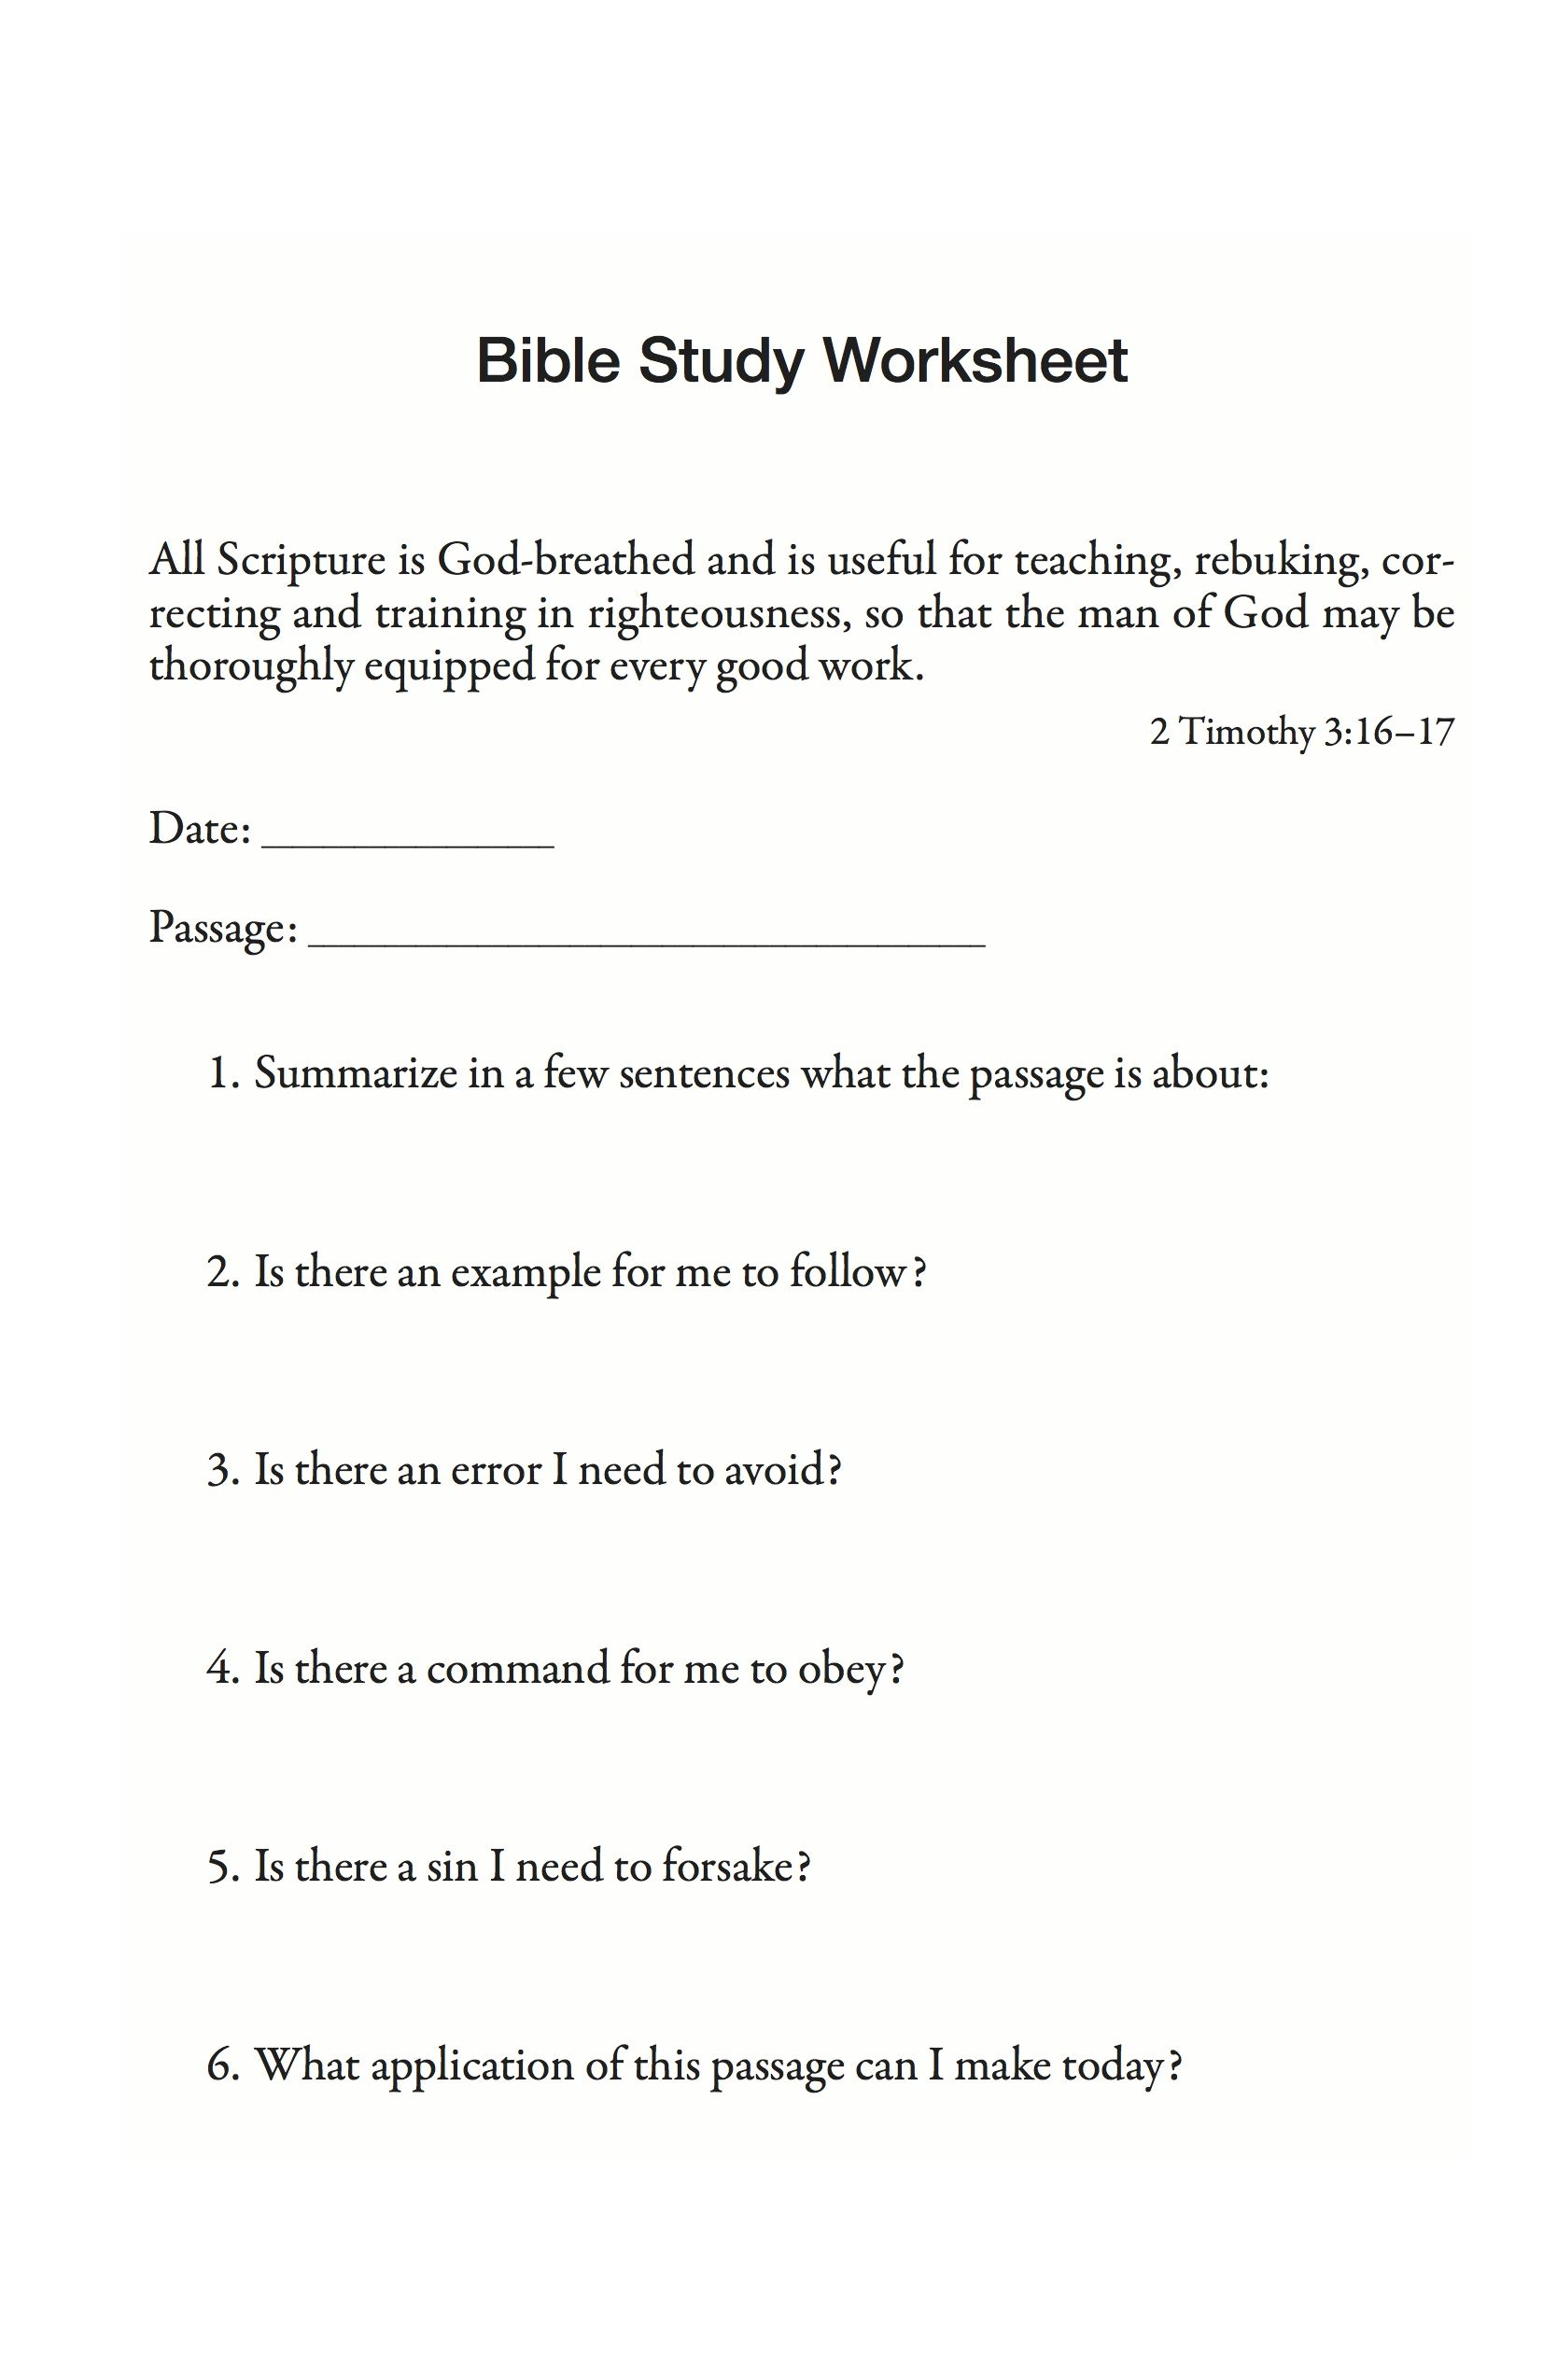 Bible Study Worksheet